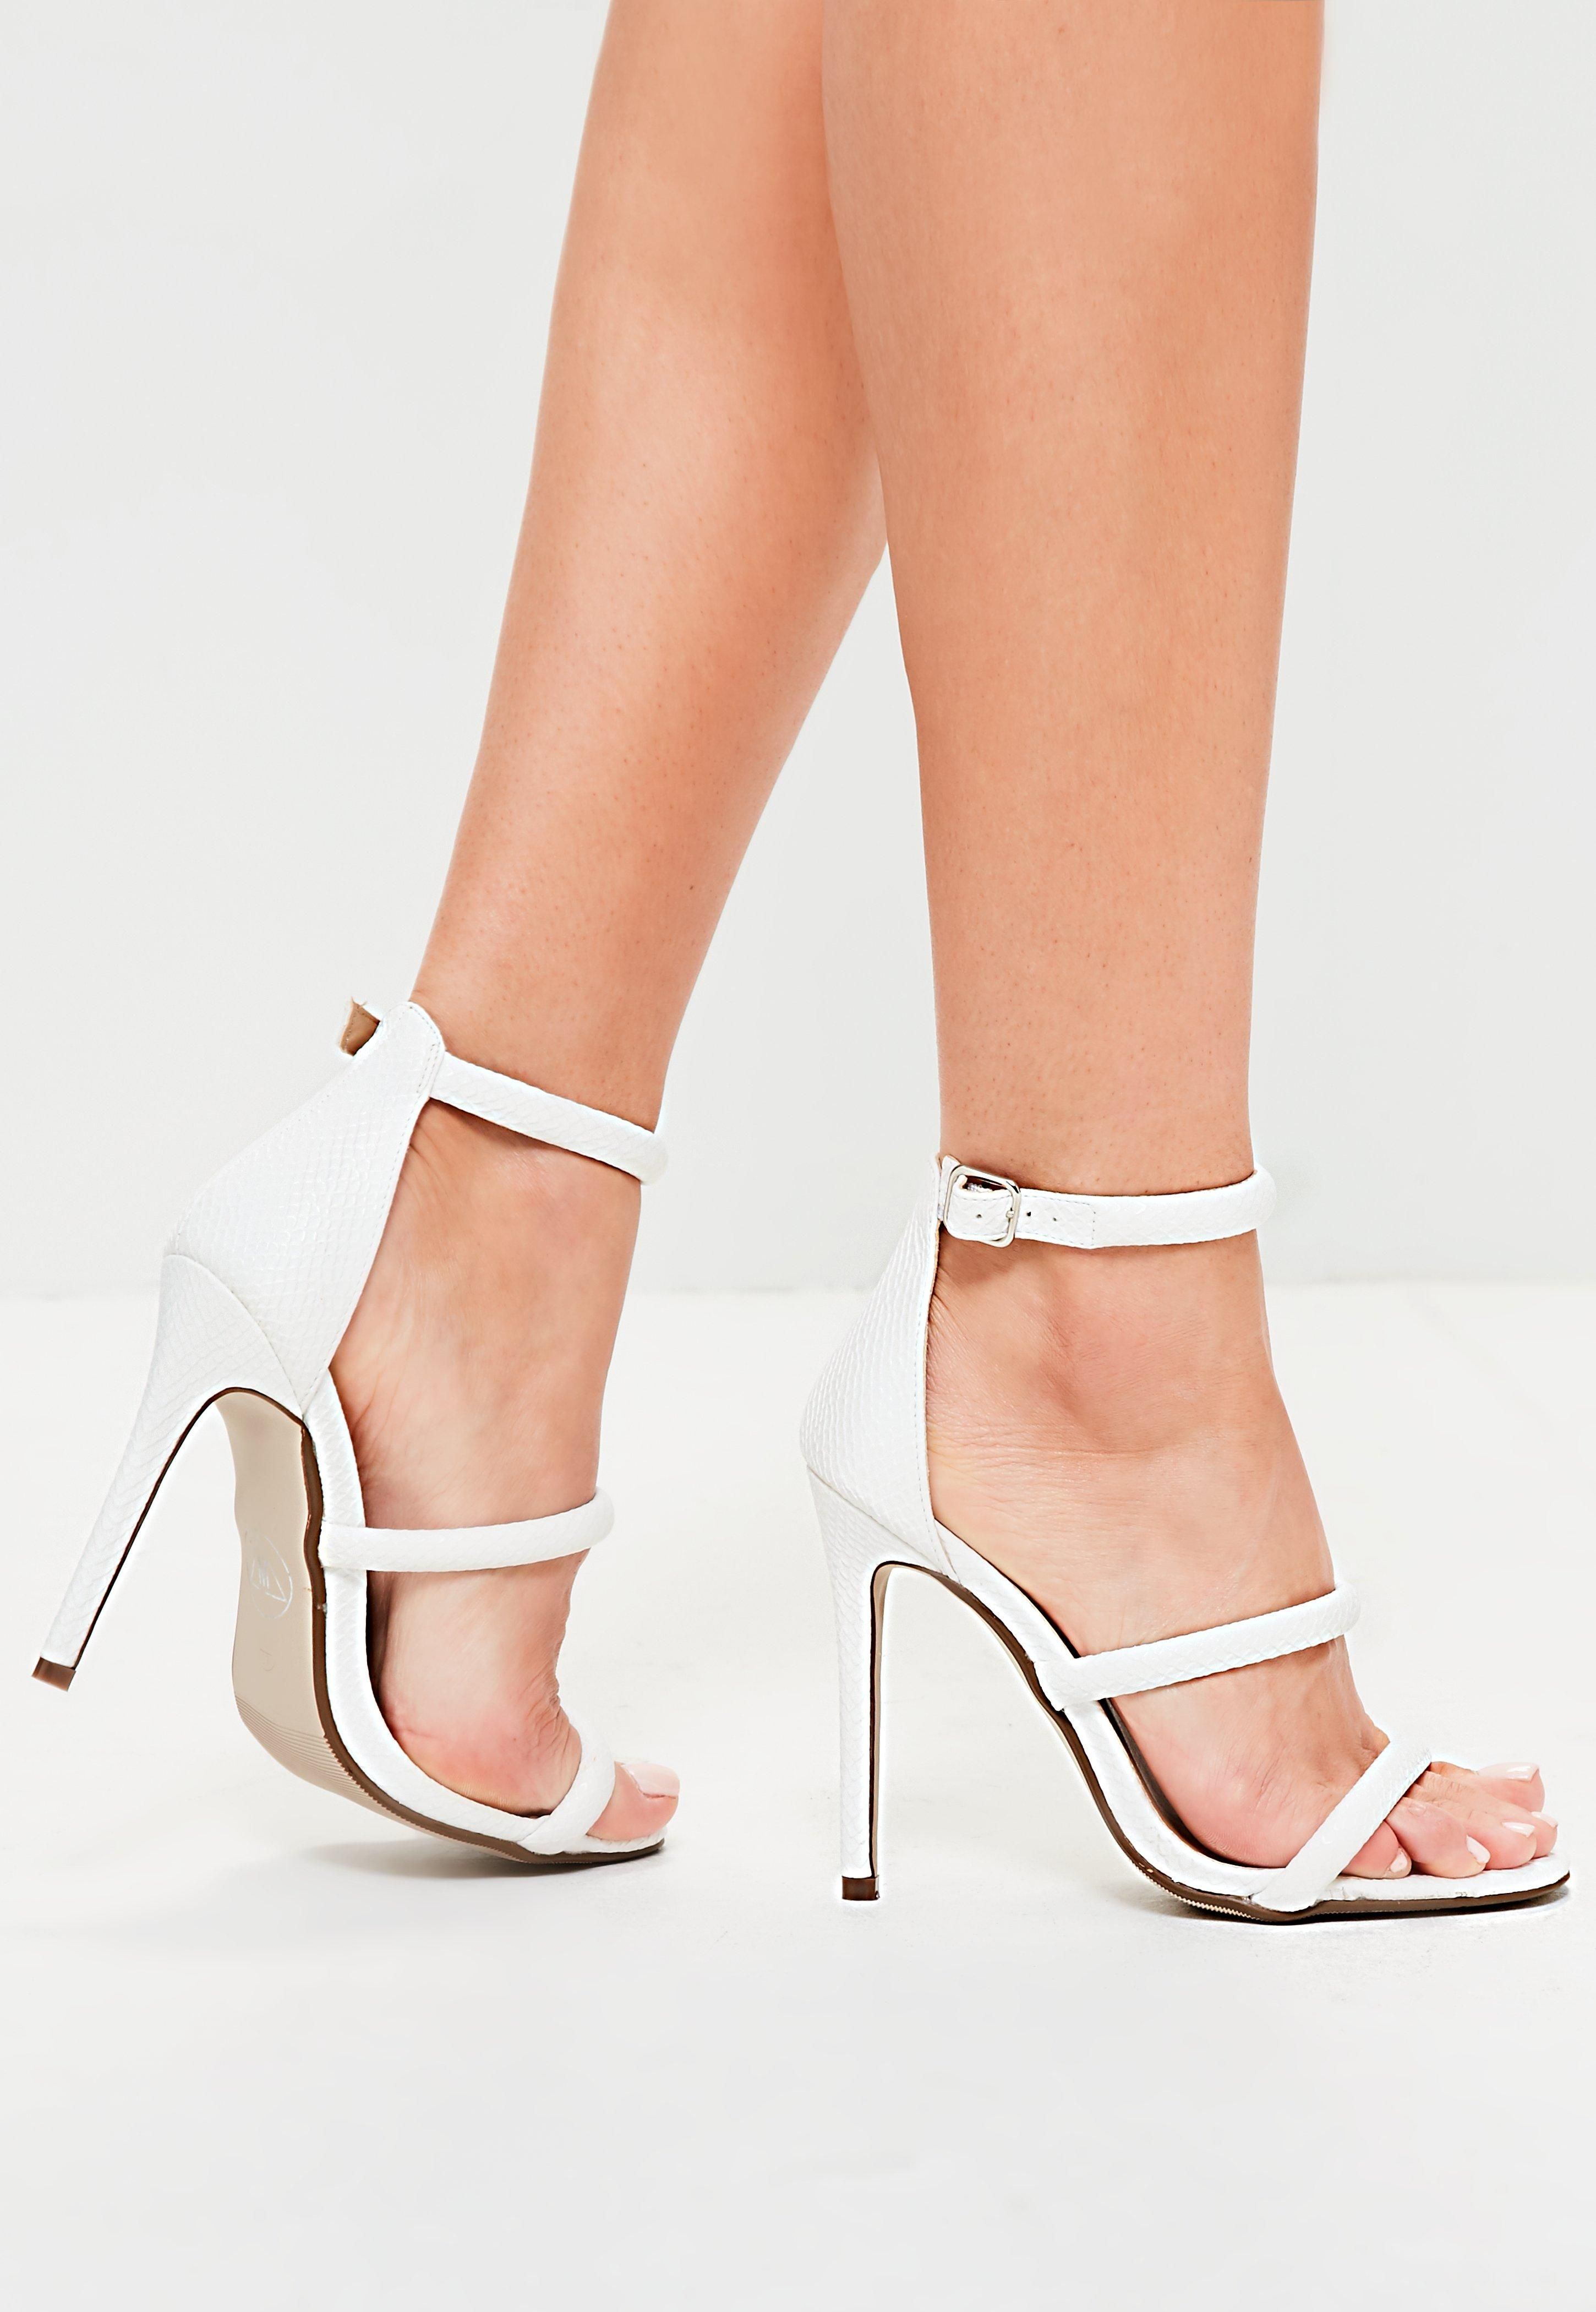 282bade1a4b Every MG girl needs a killa  pair of white barely there heels and these  three strap beauts have all the boxes ticked.